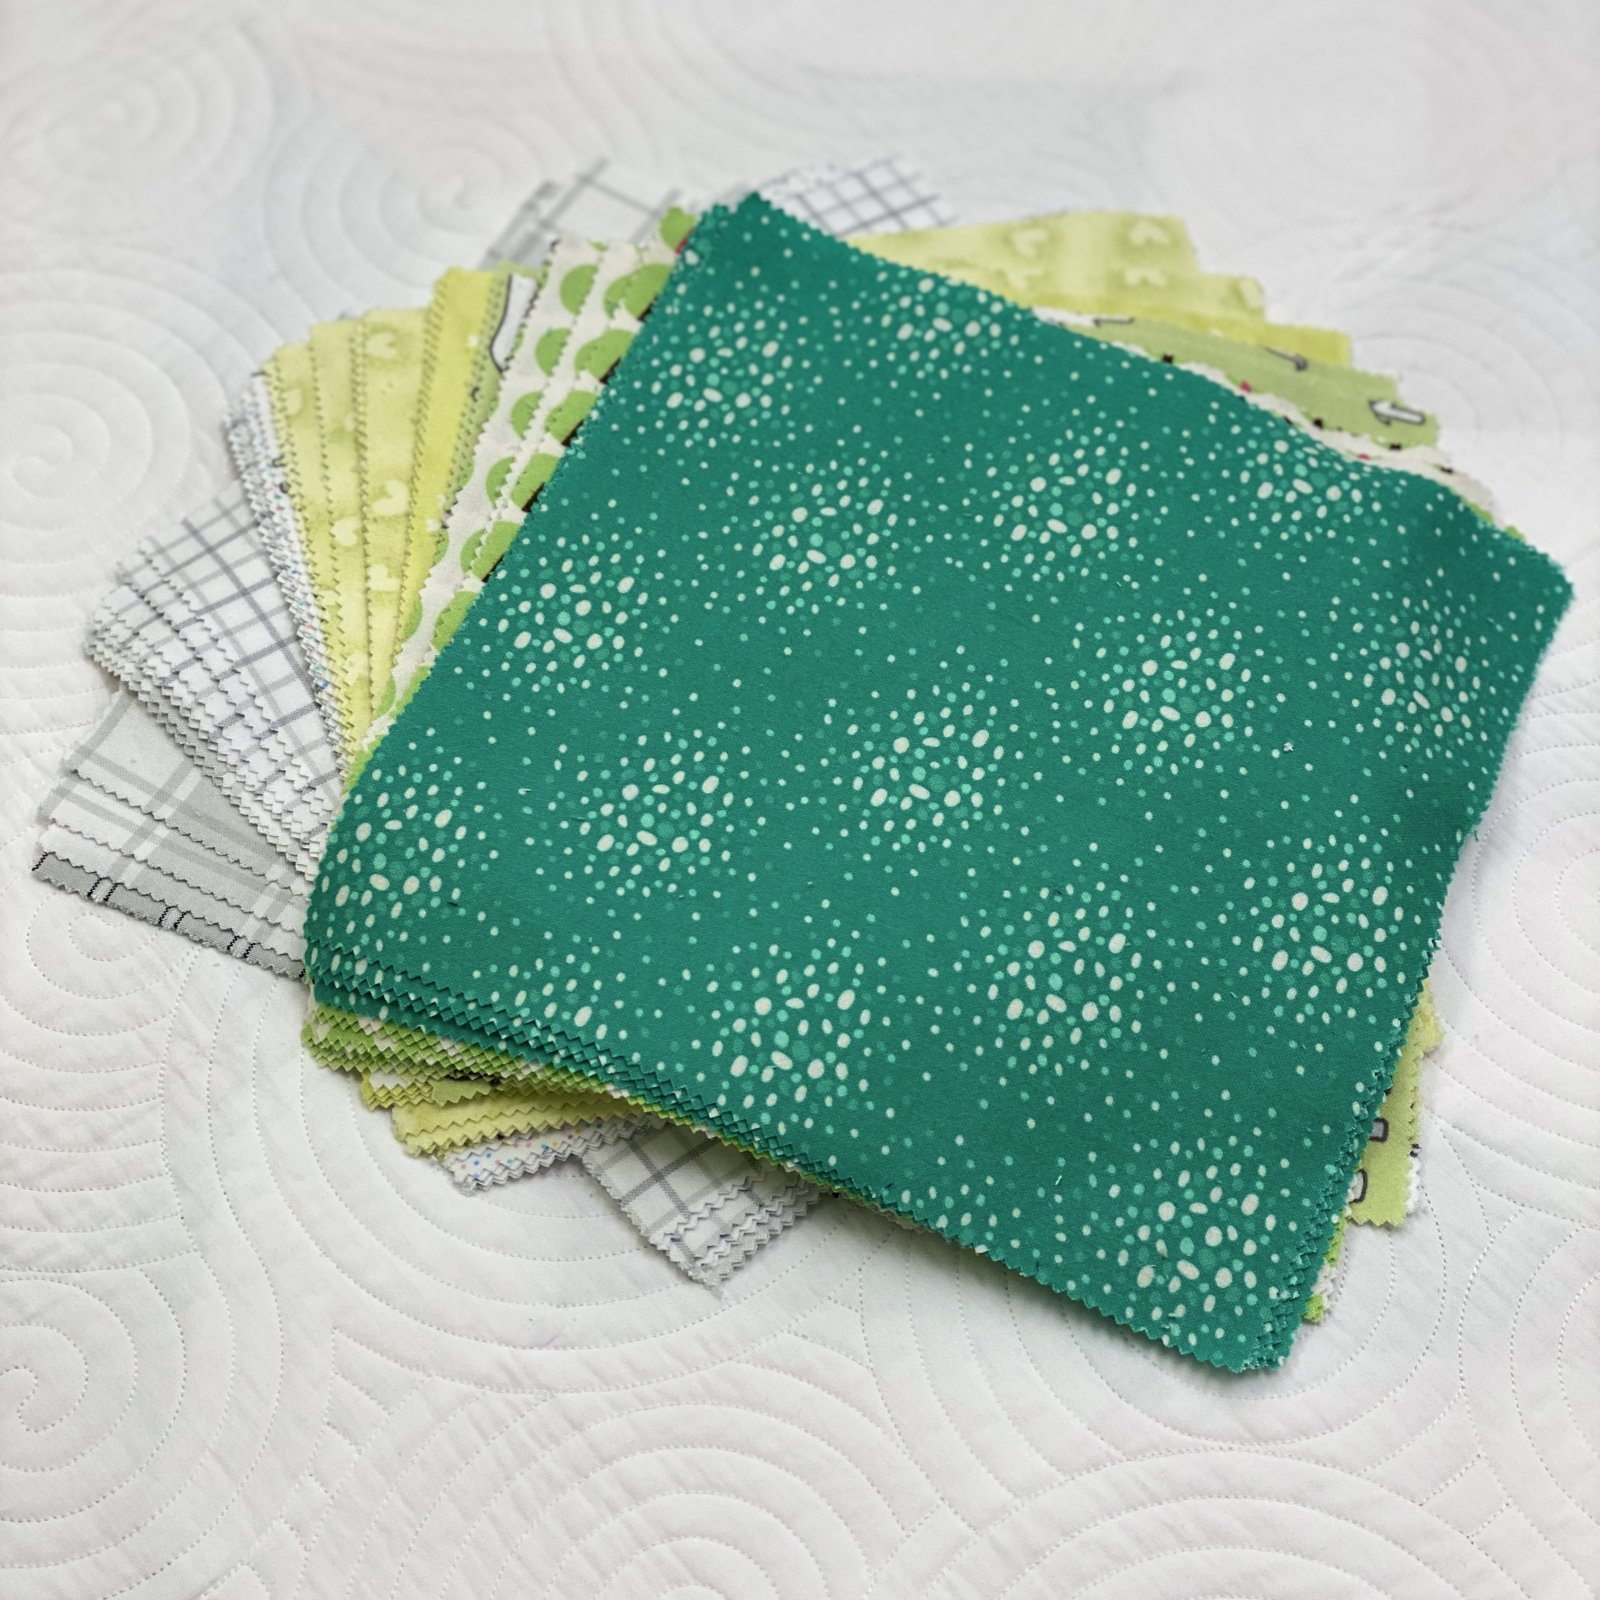 Flannel Prints Green 10 Inch Squares